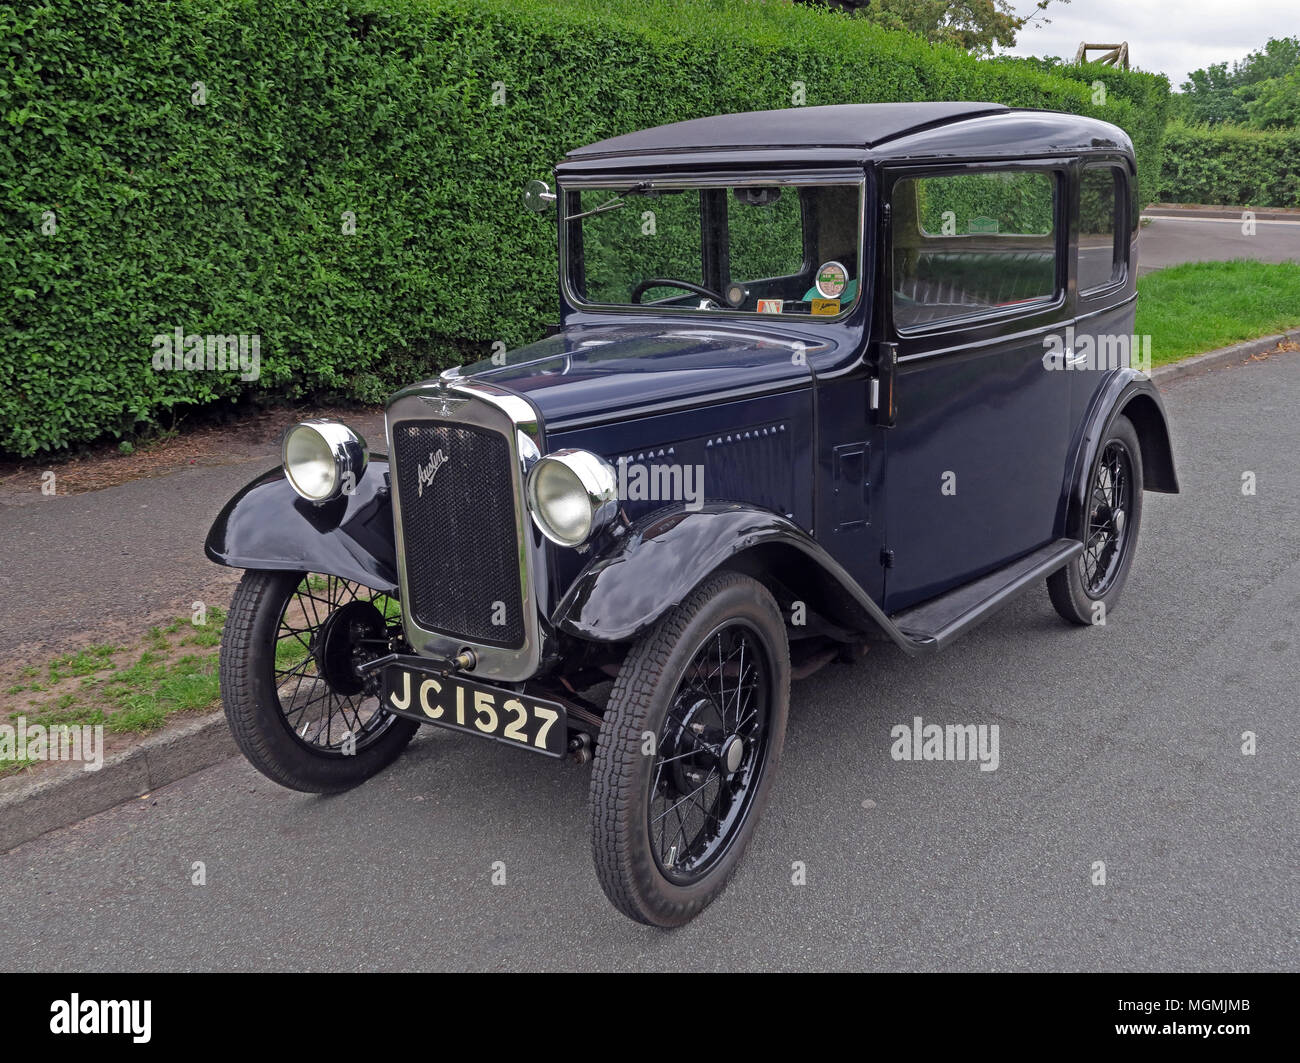 GoTonySmith,automobile,vehicle,classic,saloon,on,the,road,parked,JC